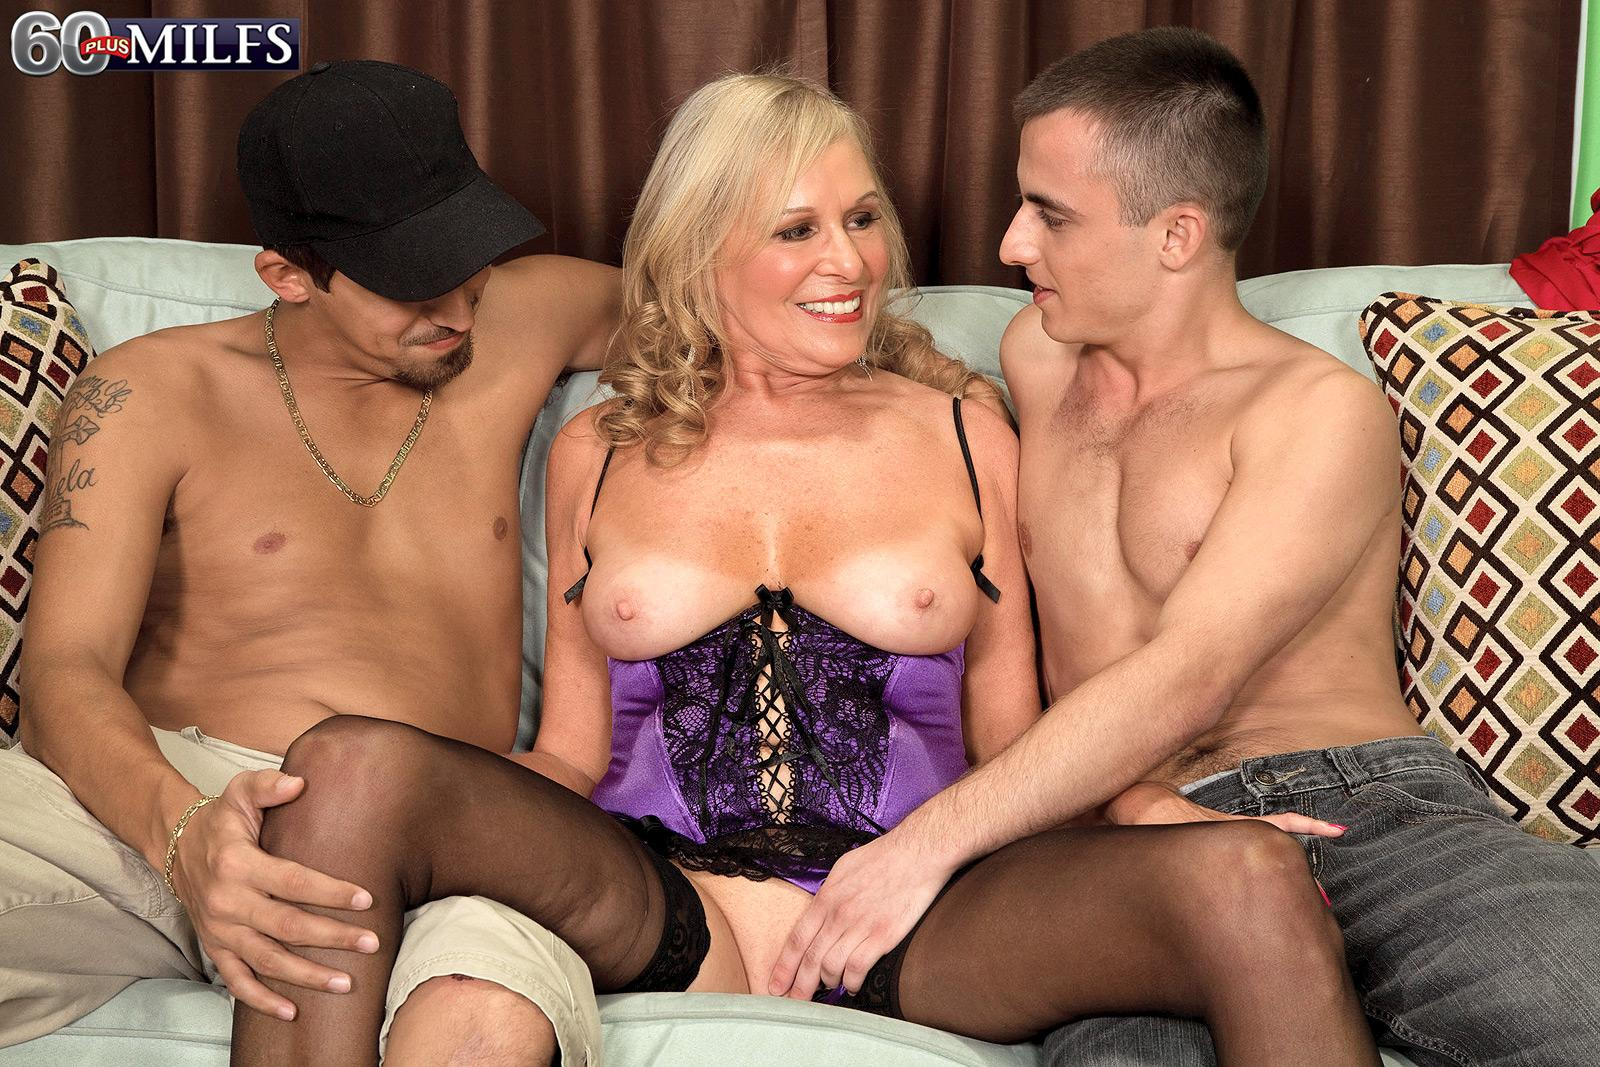 Aged sandy-haired XXX pornstar Bethany James jacking TWO boners in lingerie and hose